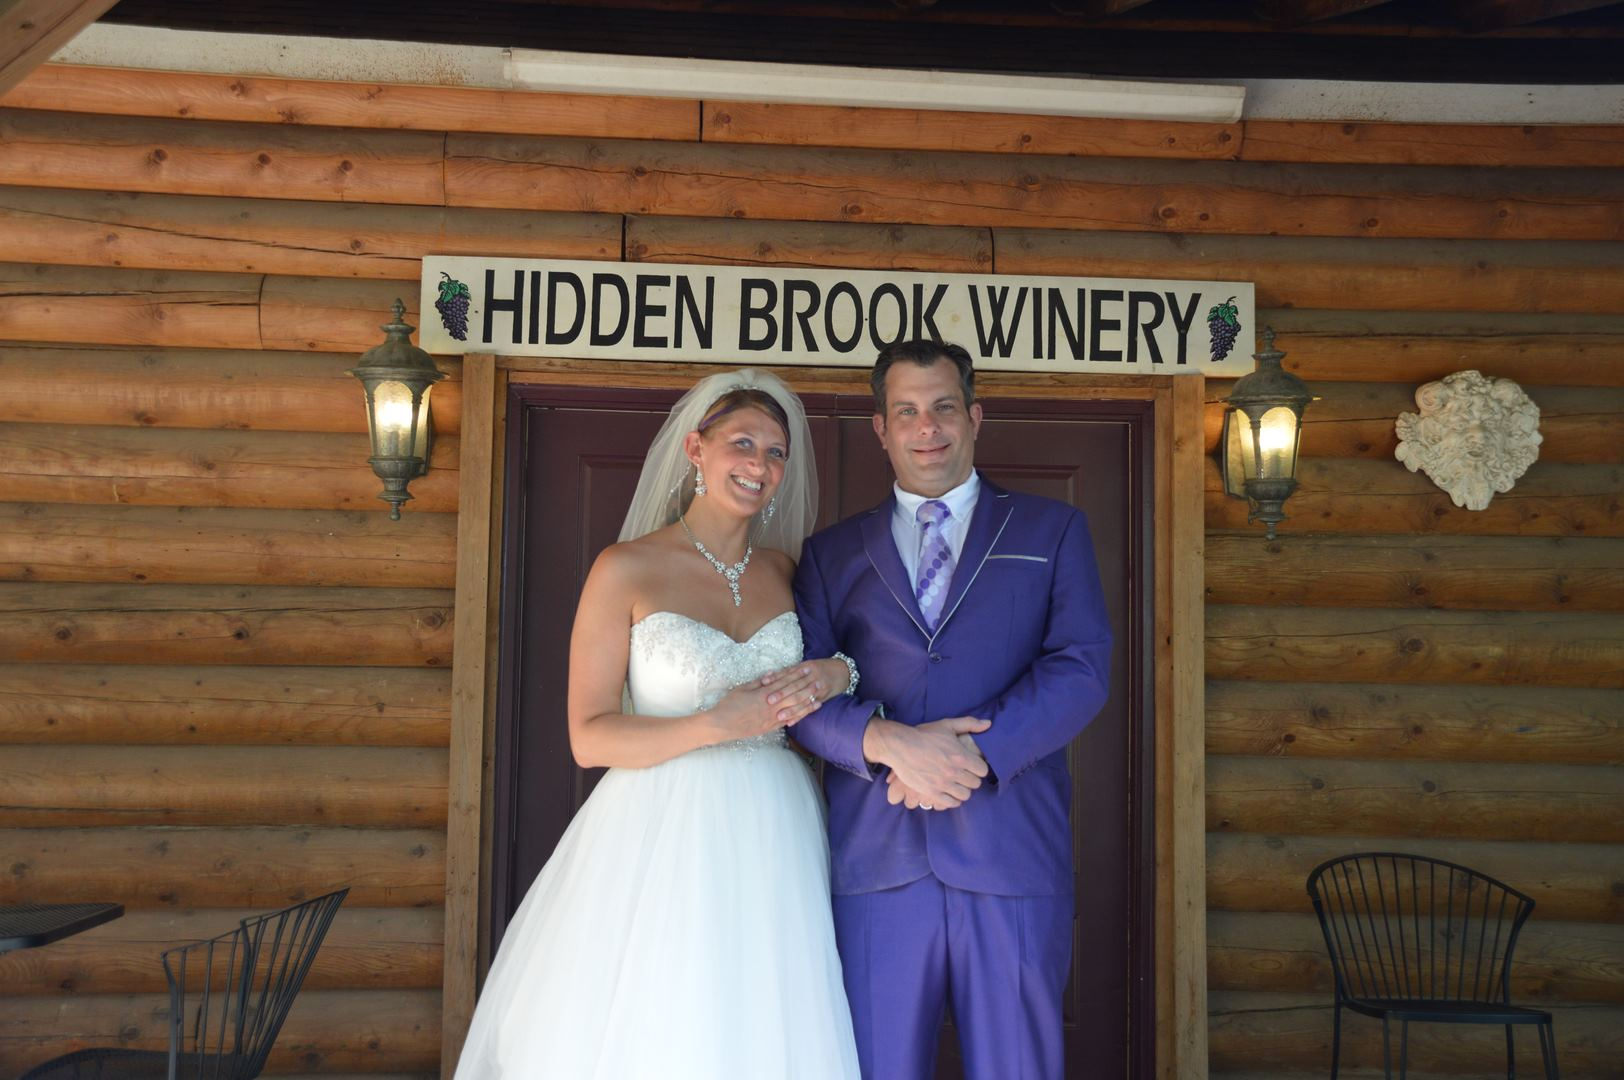 Hidden Brock Winery - 1